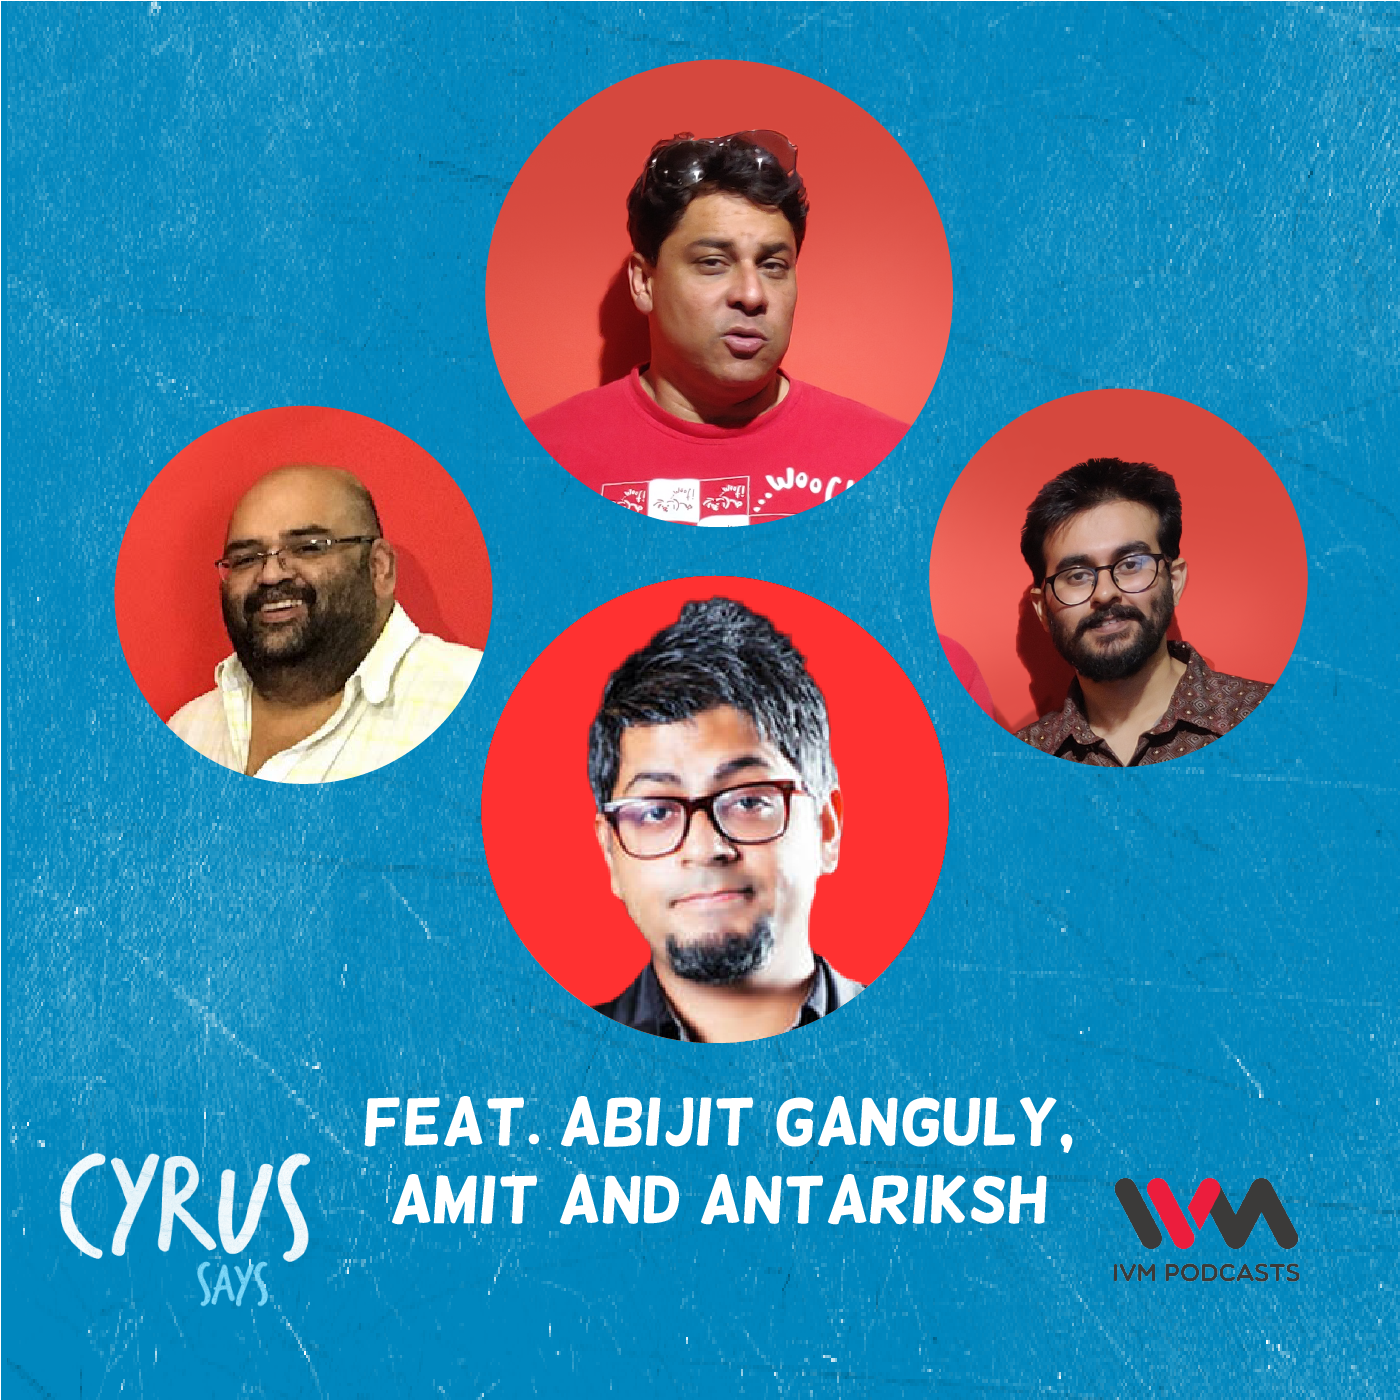 Ep. 605: feat. Abijit Ganguly, Amit and Antariksh